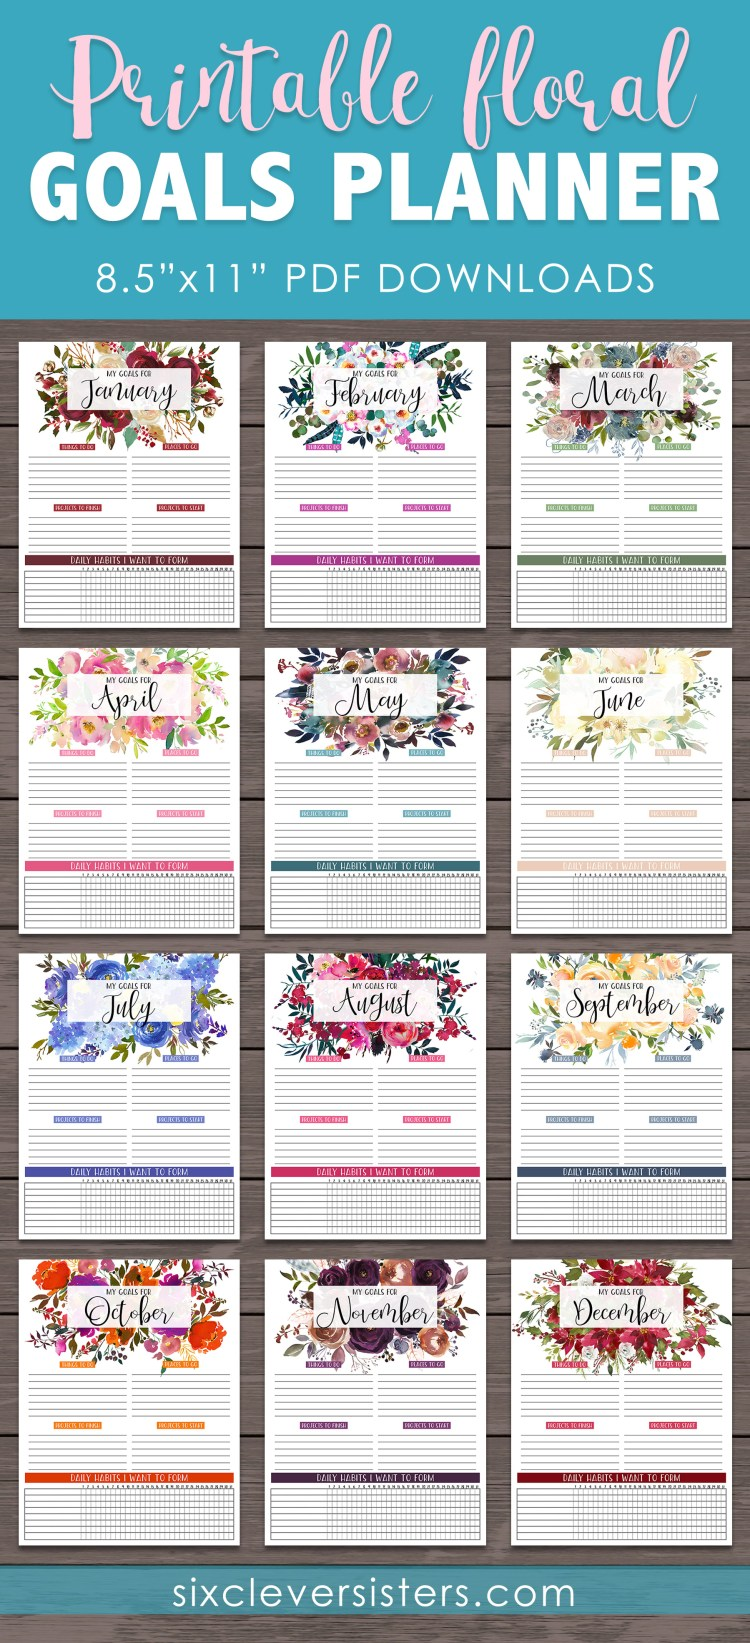 Monthly Goals Printable | Monthly Goal Planner | Monthly Goal Planner Free | Monthly Goal Planner Printable | Monthly Goals Printable Free | Monthly Goals | Monthly Goals Bullet Journal | Goals Planner Printable | Goals Planner DIY | Goals Planner Printable Free | Download our free printable floral GOALS PLANNER PAGES for each month! PDF's are on the Six Clever Sisters' blog!